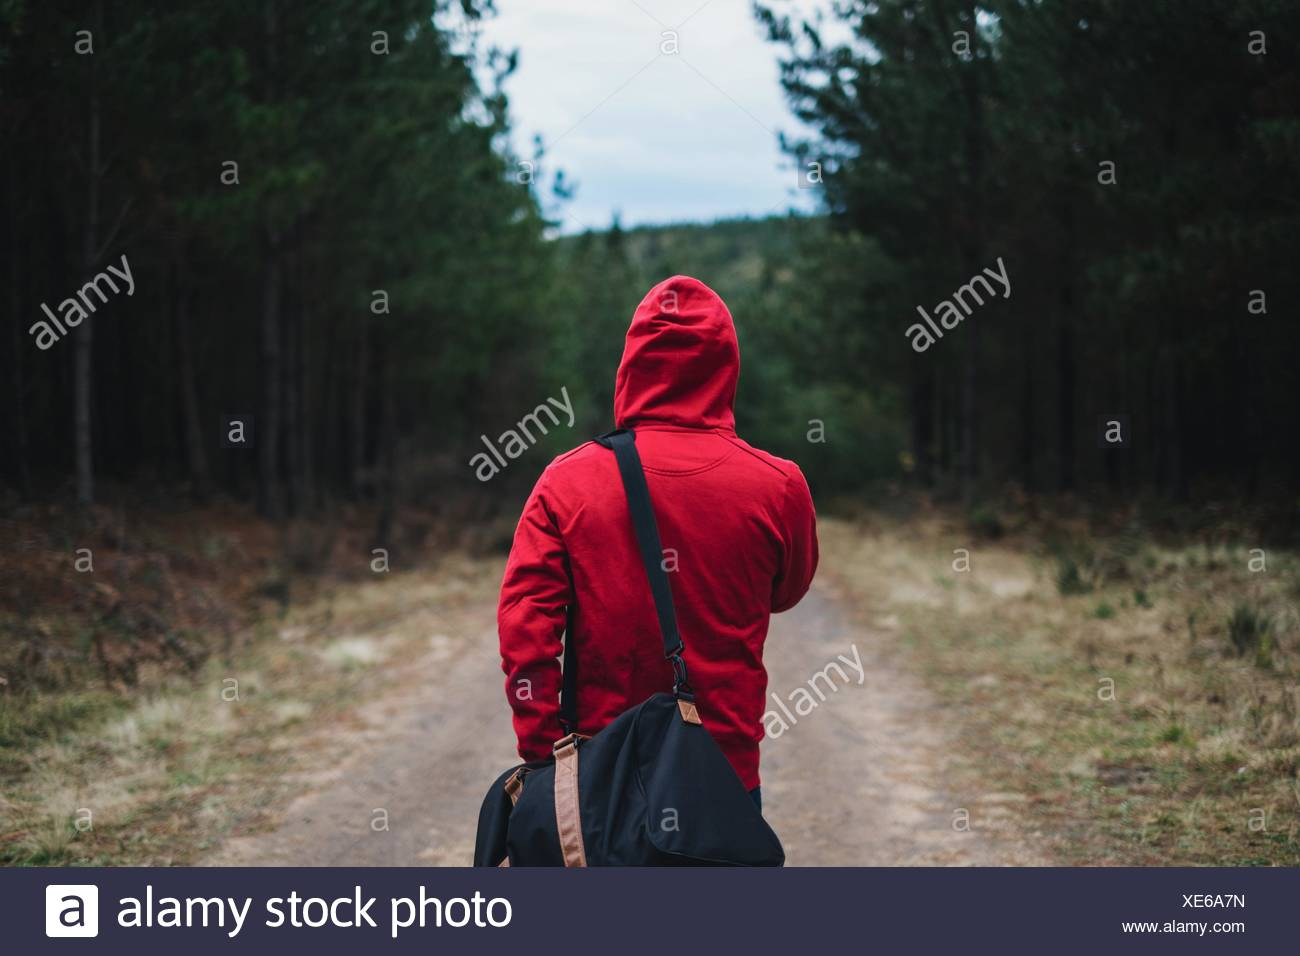 Rear View Of Person In Hooded Shirt Walking With Bag In Belanglo State Forest - Stock Image